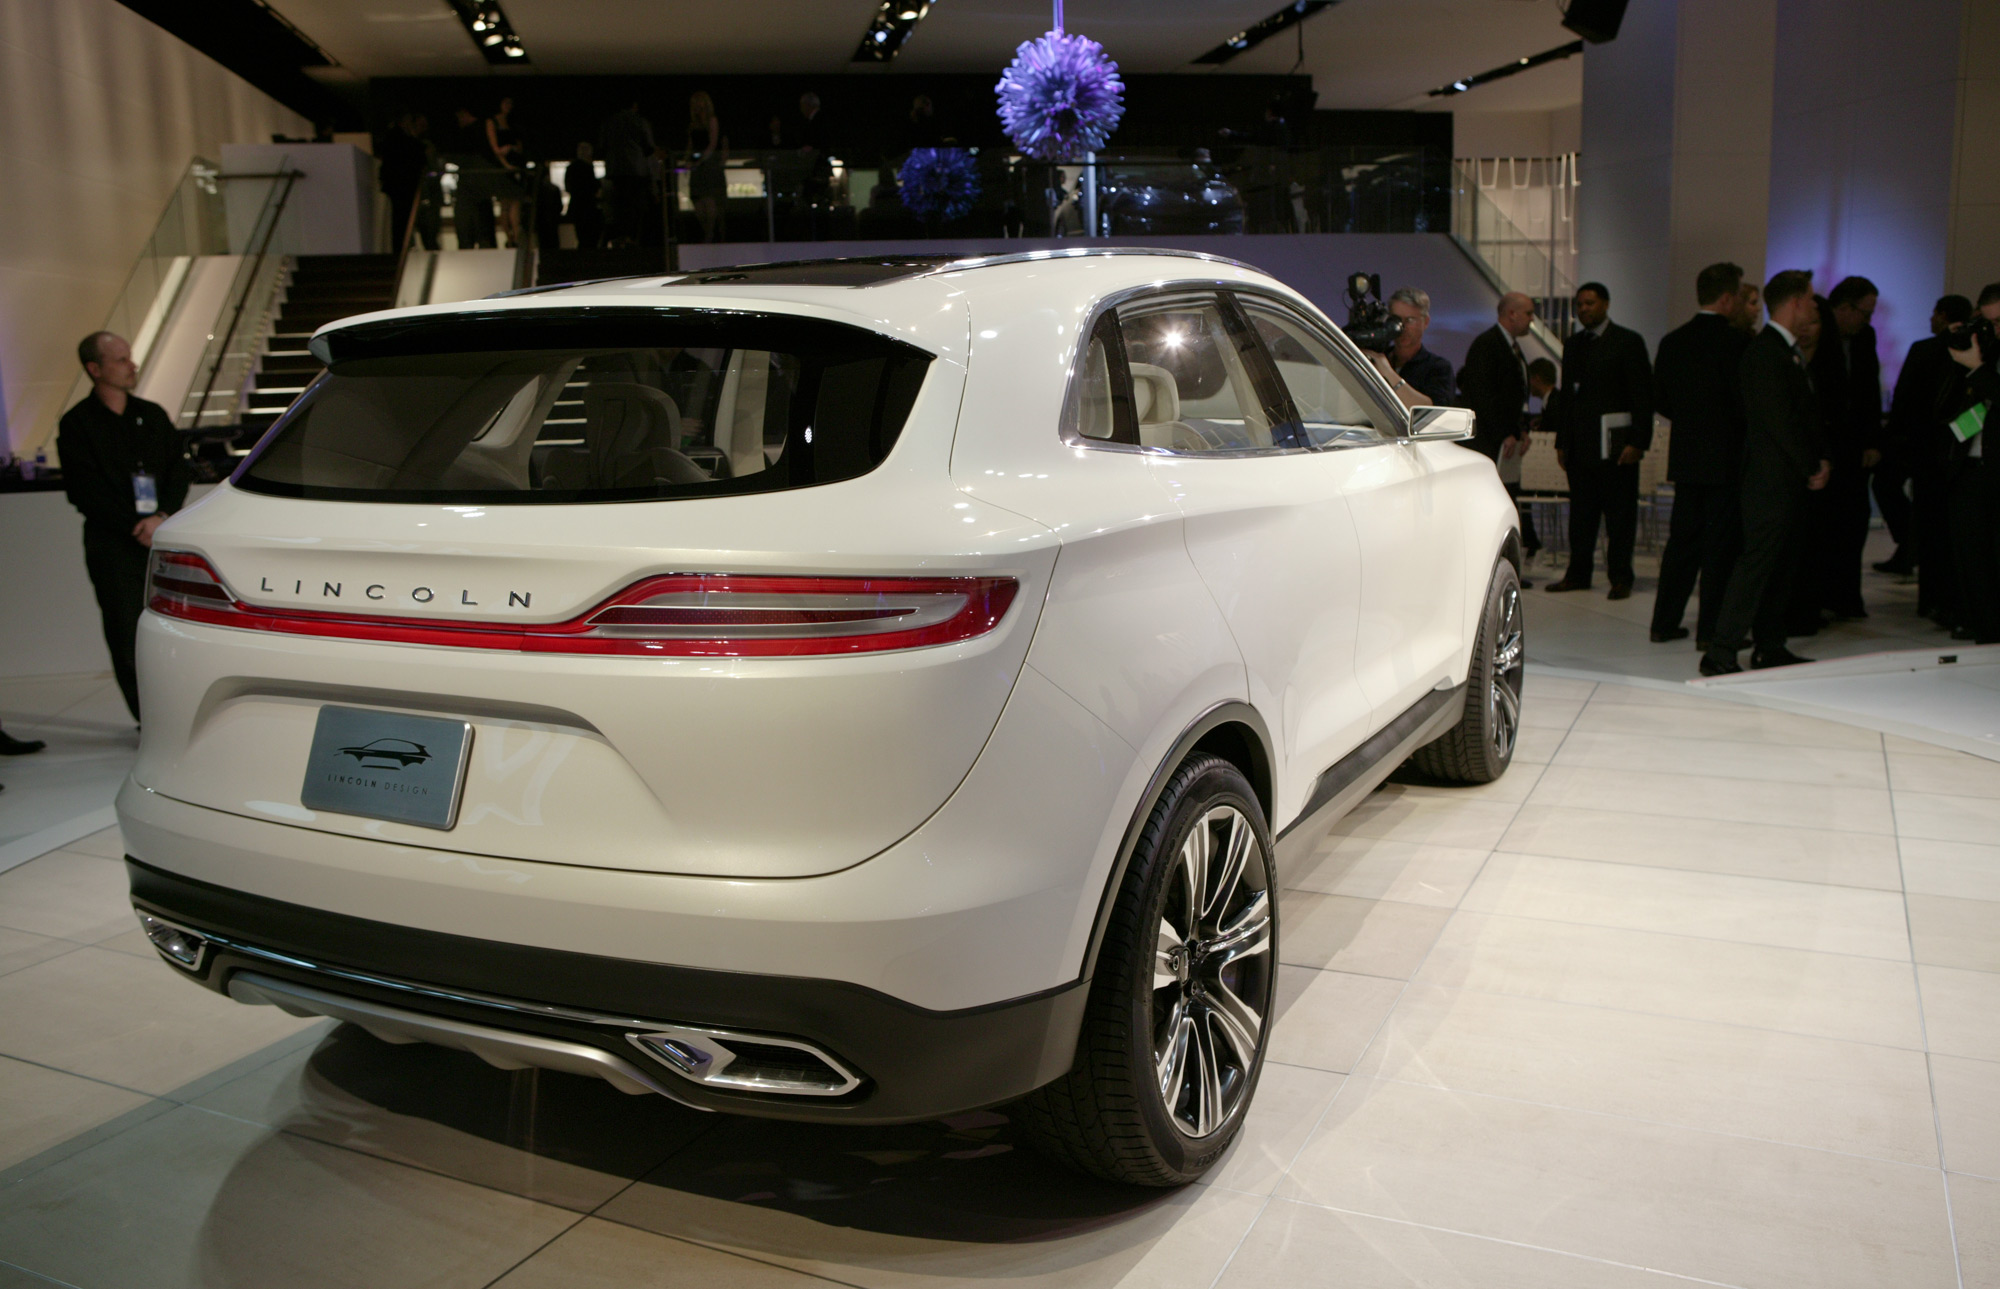 2014 Lincoln Mkc Concept Backgrounds on Wallpapers Vista